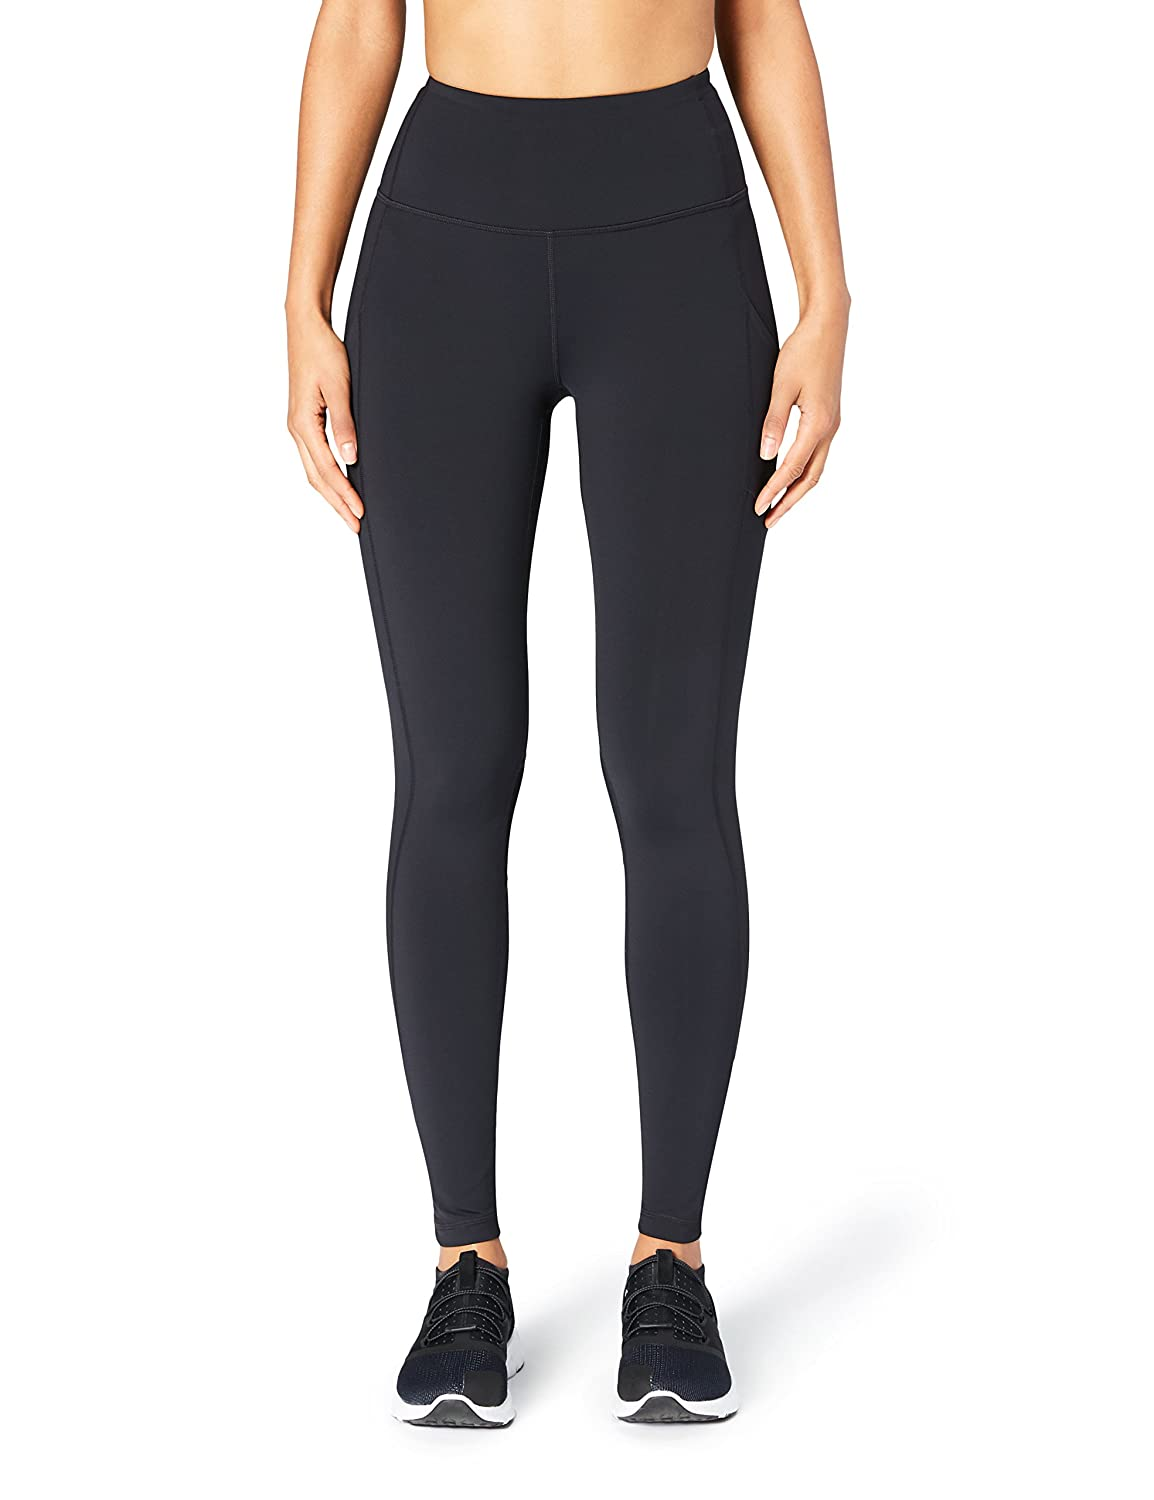 b1cd6a9592 Amazon Brand - Core 10 Women's (XS-3X) 'Build Your Own' Onstride Run  Full-Length Legging with Pockets, Inseams Available